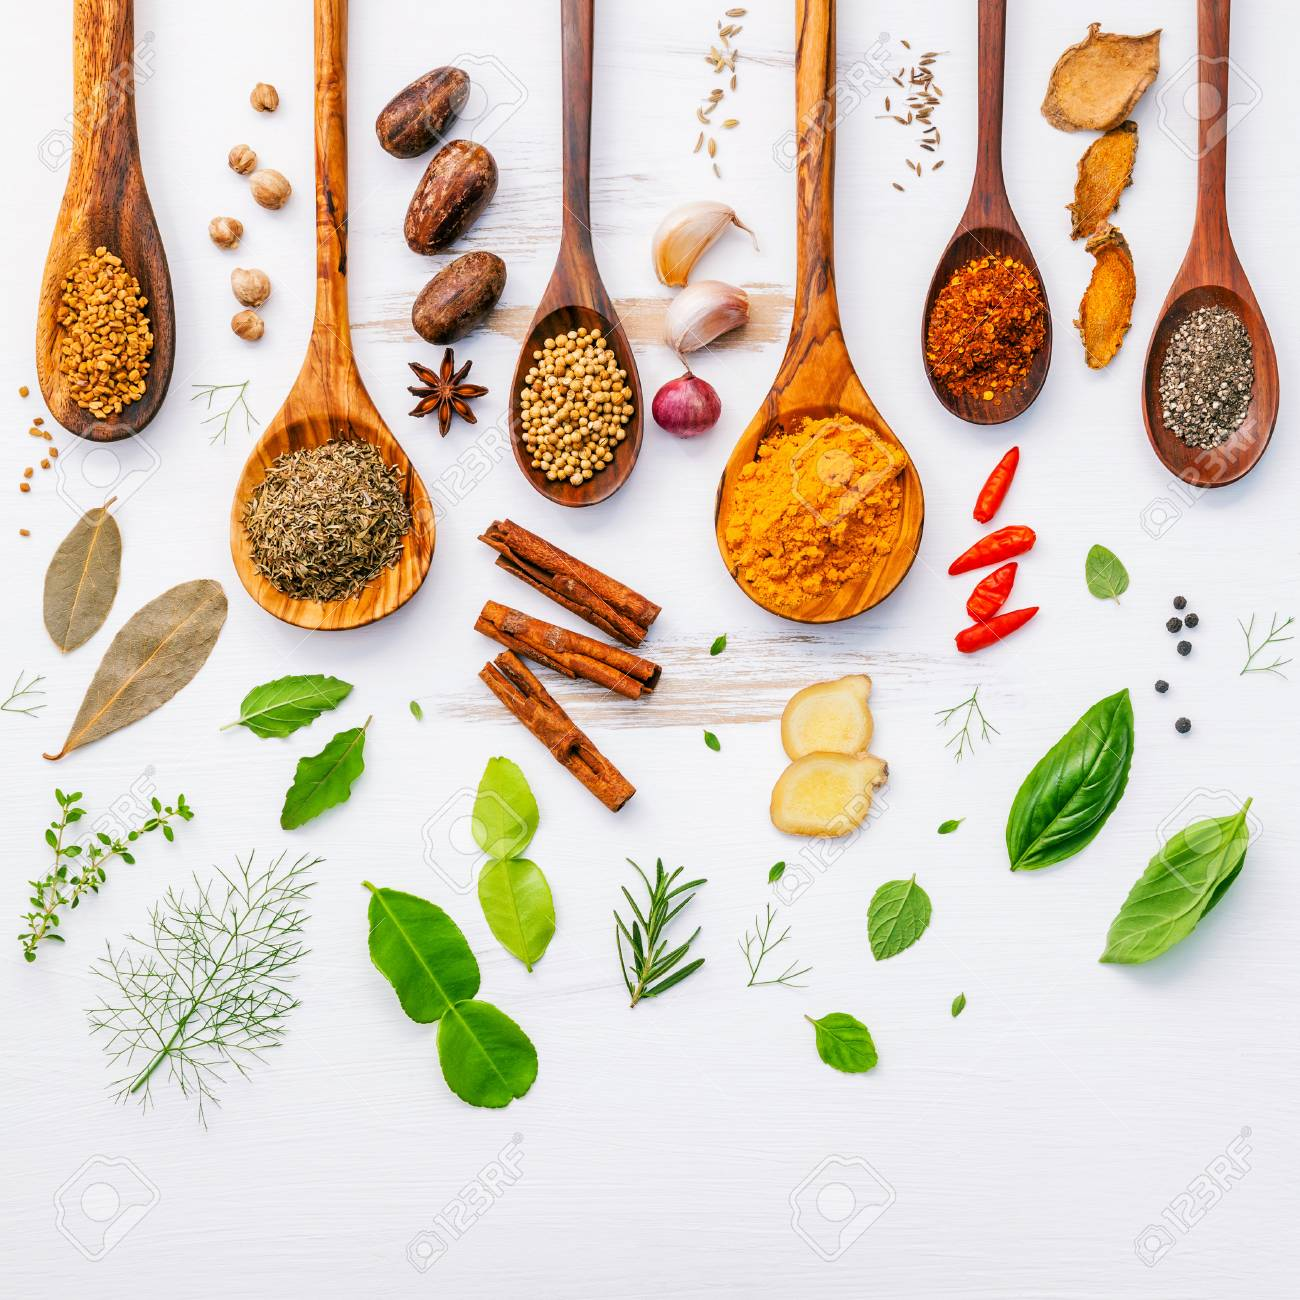 Various herbs and spices in wooden spoons. Flat lay of spices ingredients chilli ,pepper, garlic,dries thyme, cinnamon,star anise, nutmeg,rosemary, sweet basil and kaffir lime on wooden background. - 70652167